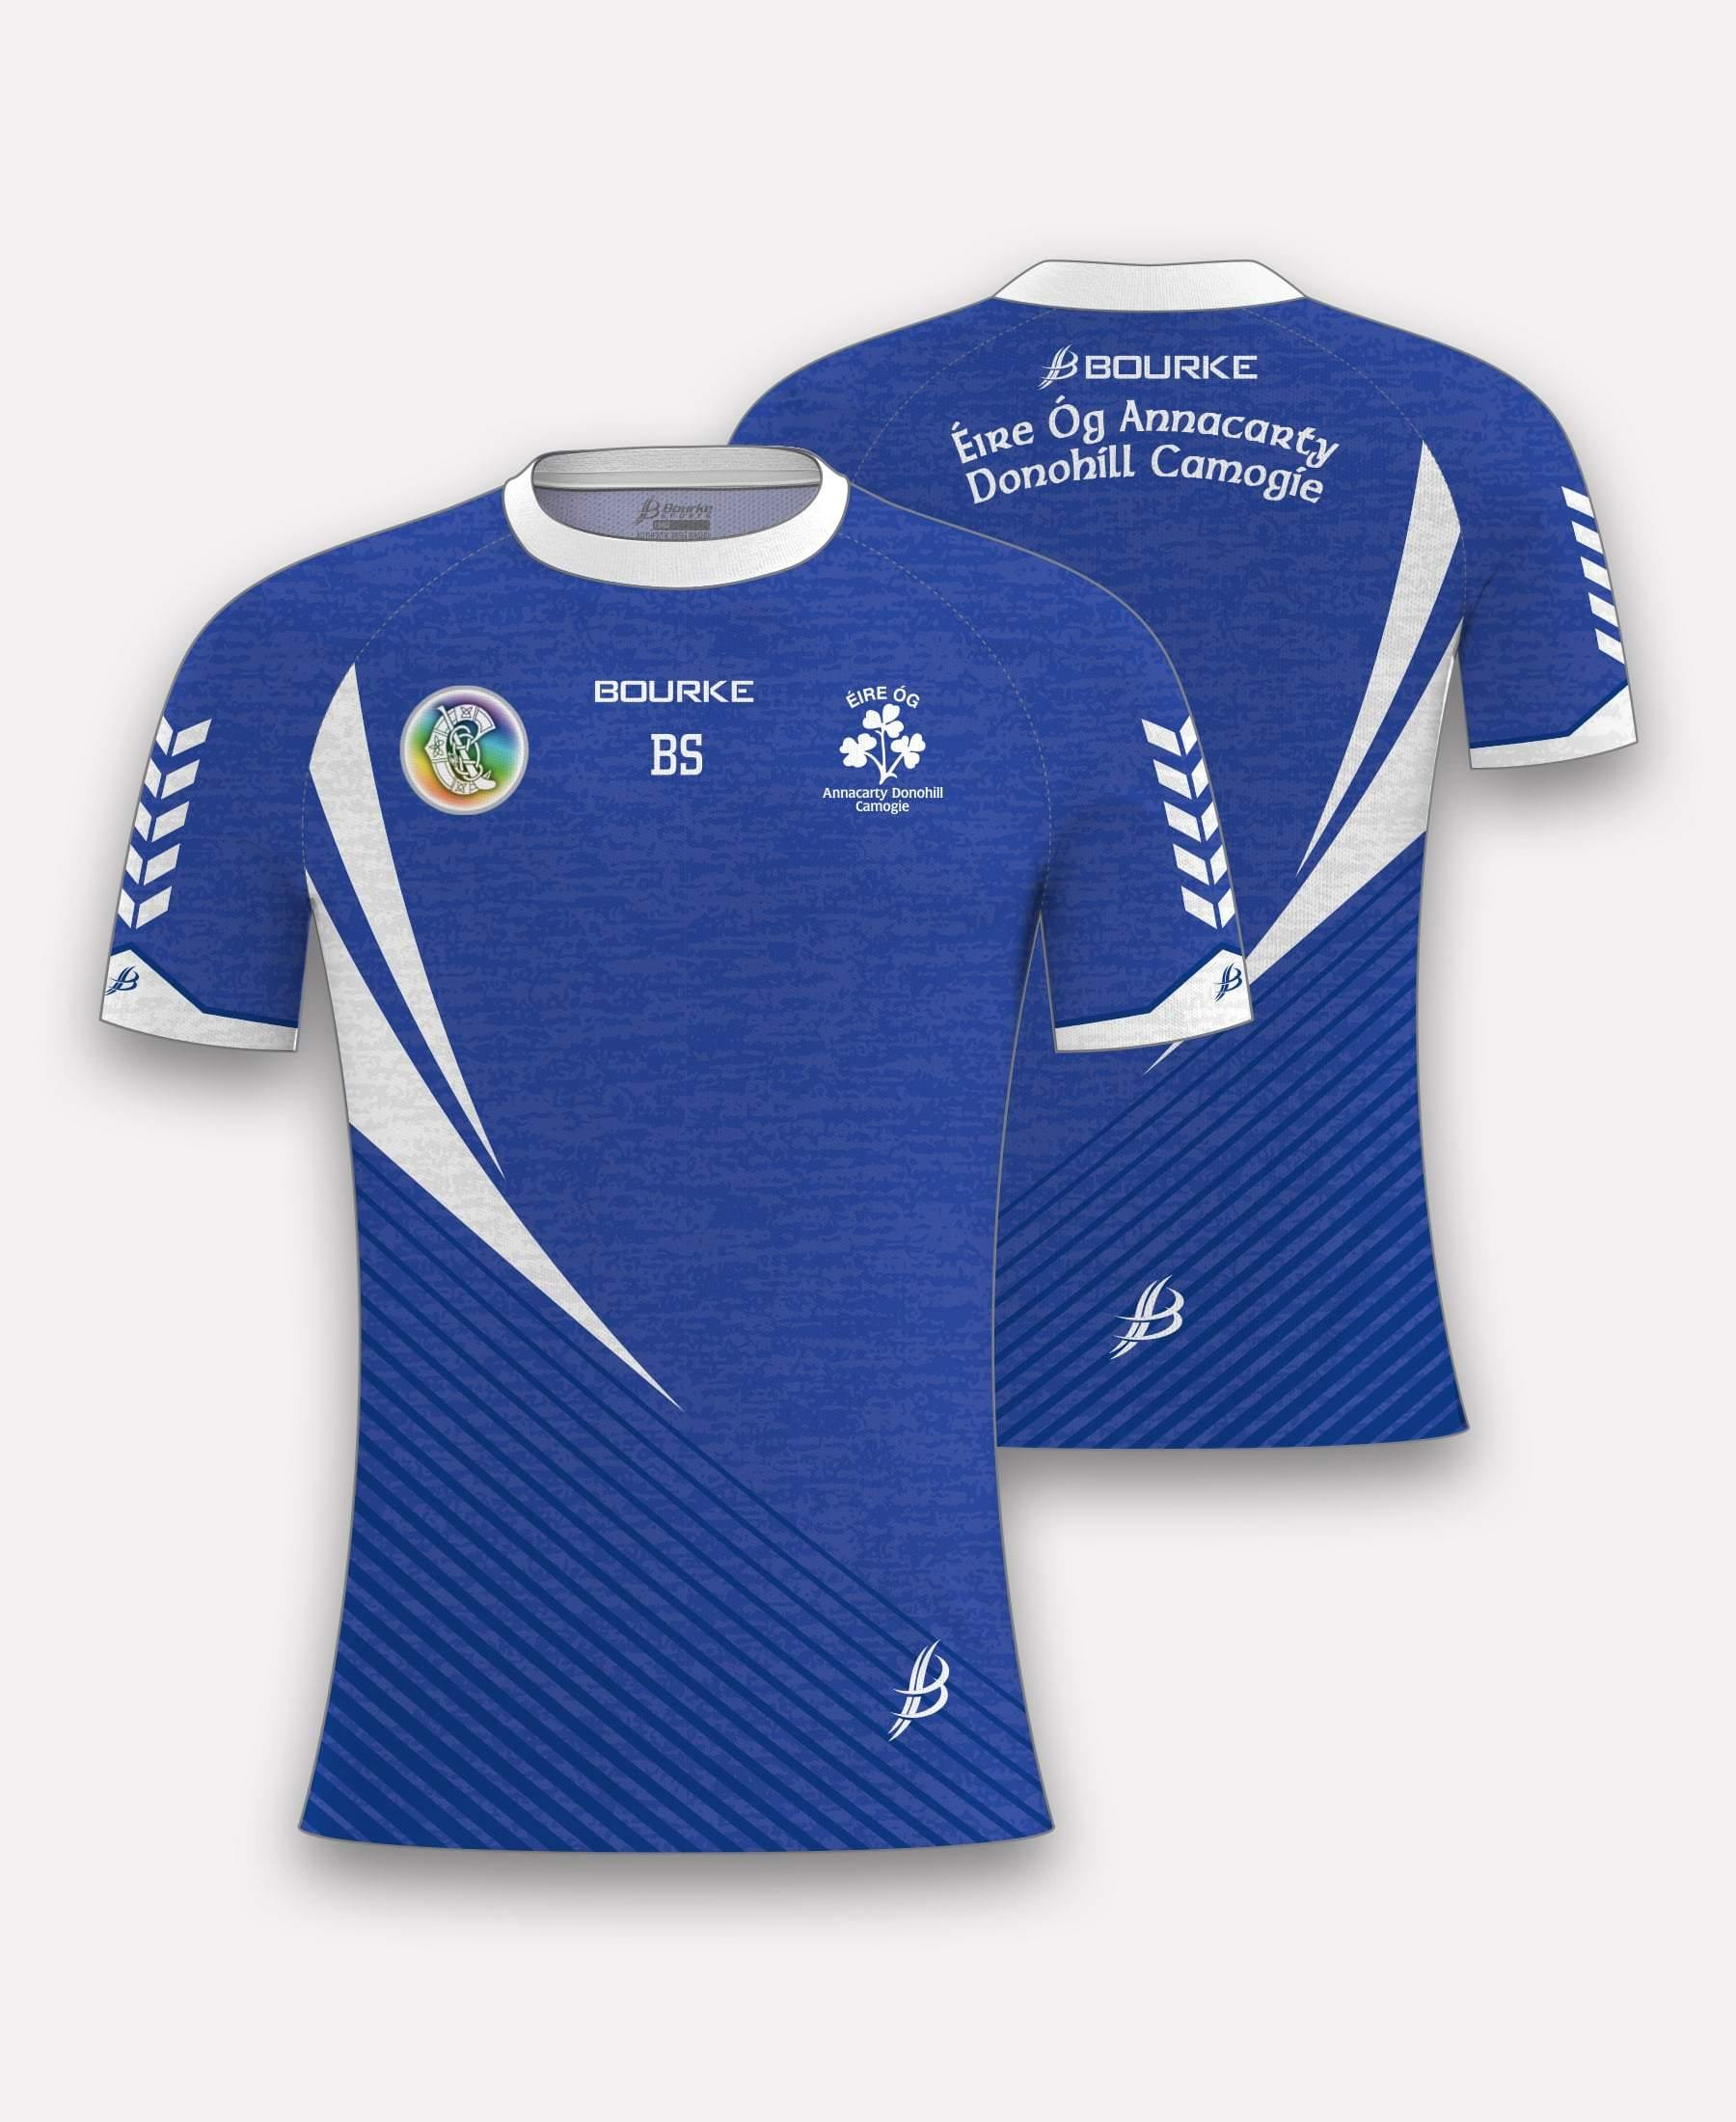 Eire Og Annacarty Donohill Camogie Jersey